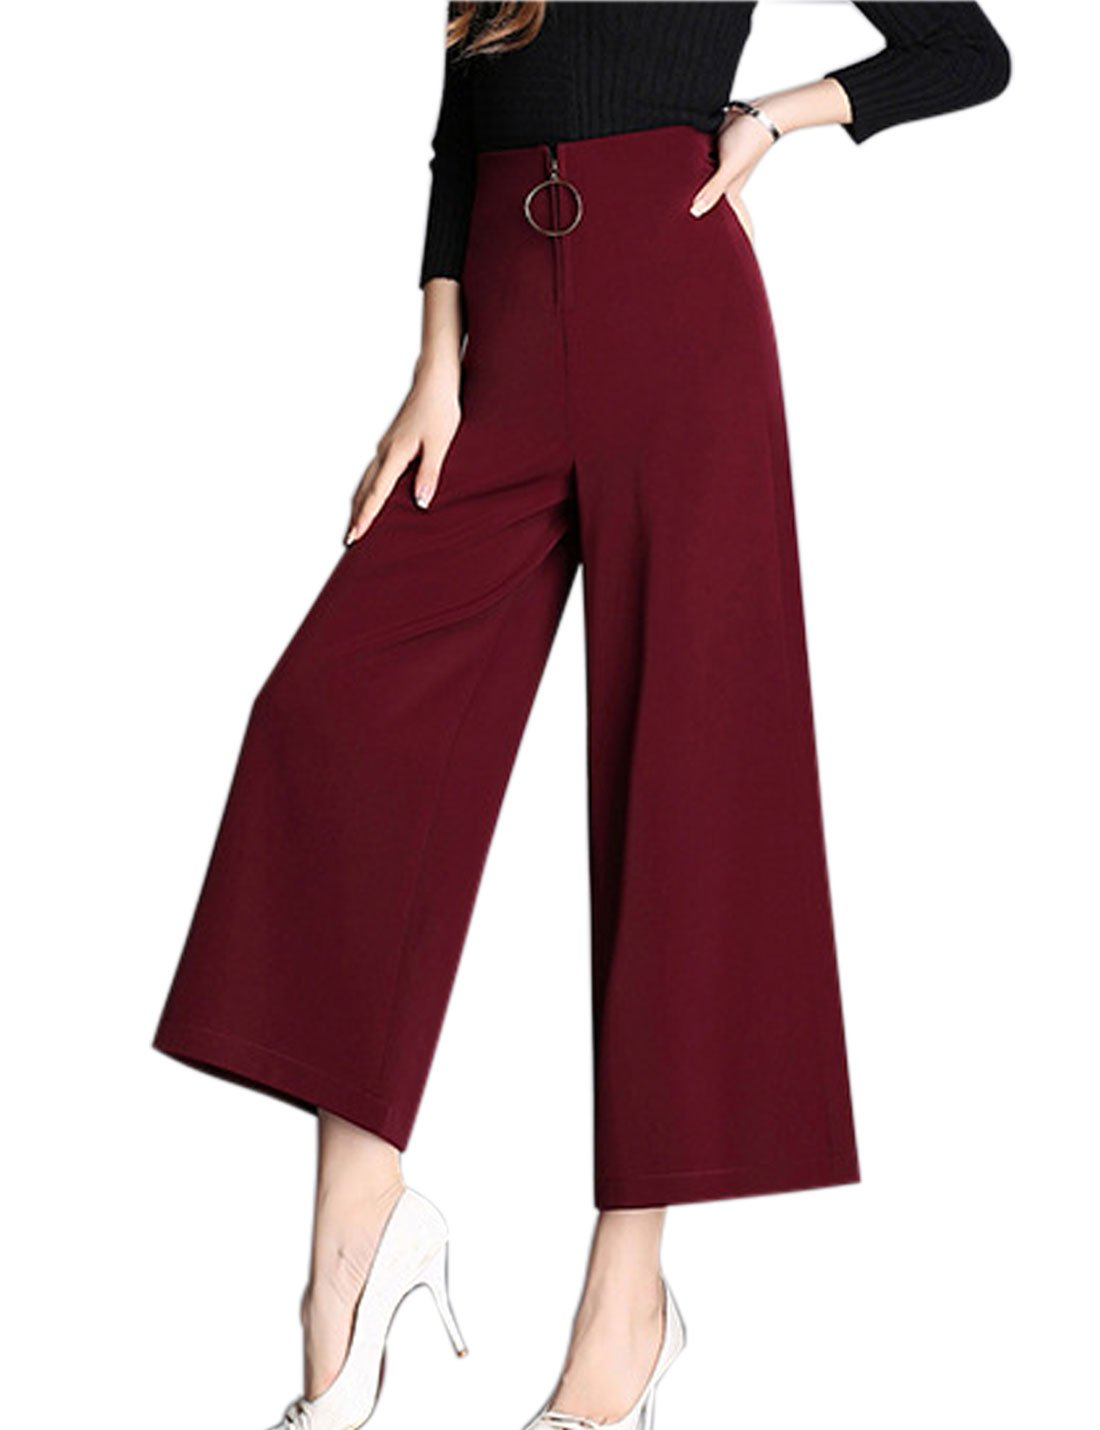 Tanming Women's Black and Red High Waist Cropped Wide Leg Pants Three Color (Small, Dark Red)